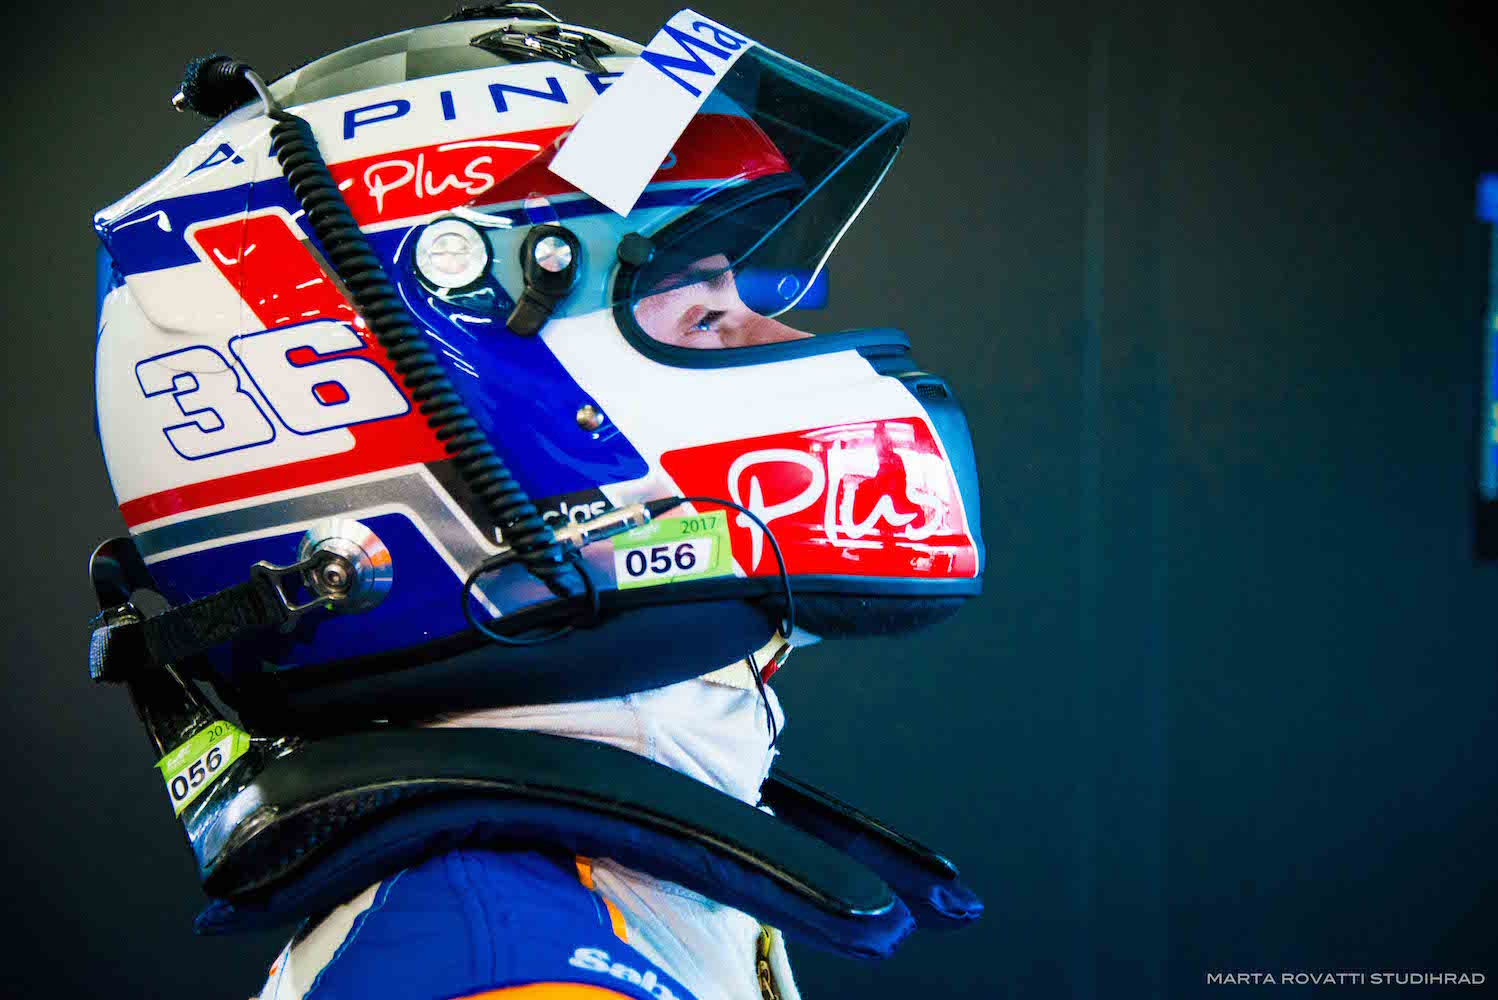 Spacesuit-Media-Marta-Rovatti-Studihrad-FIA-Formula-E-Marrakesh-ePrix-November-2016MGR_9195